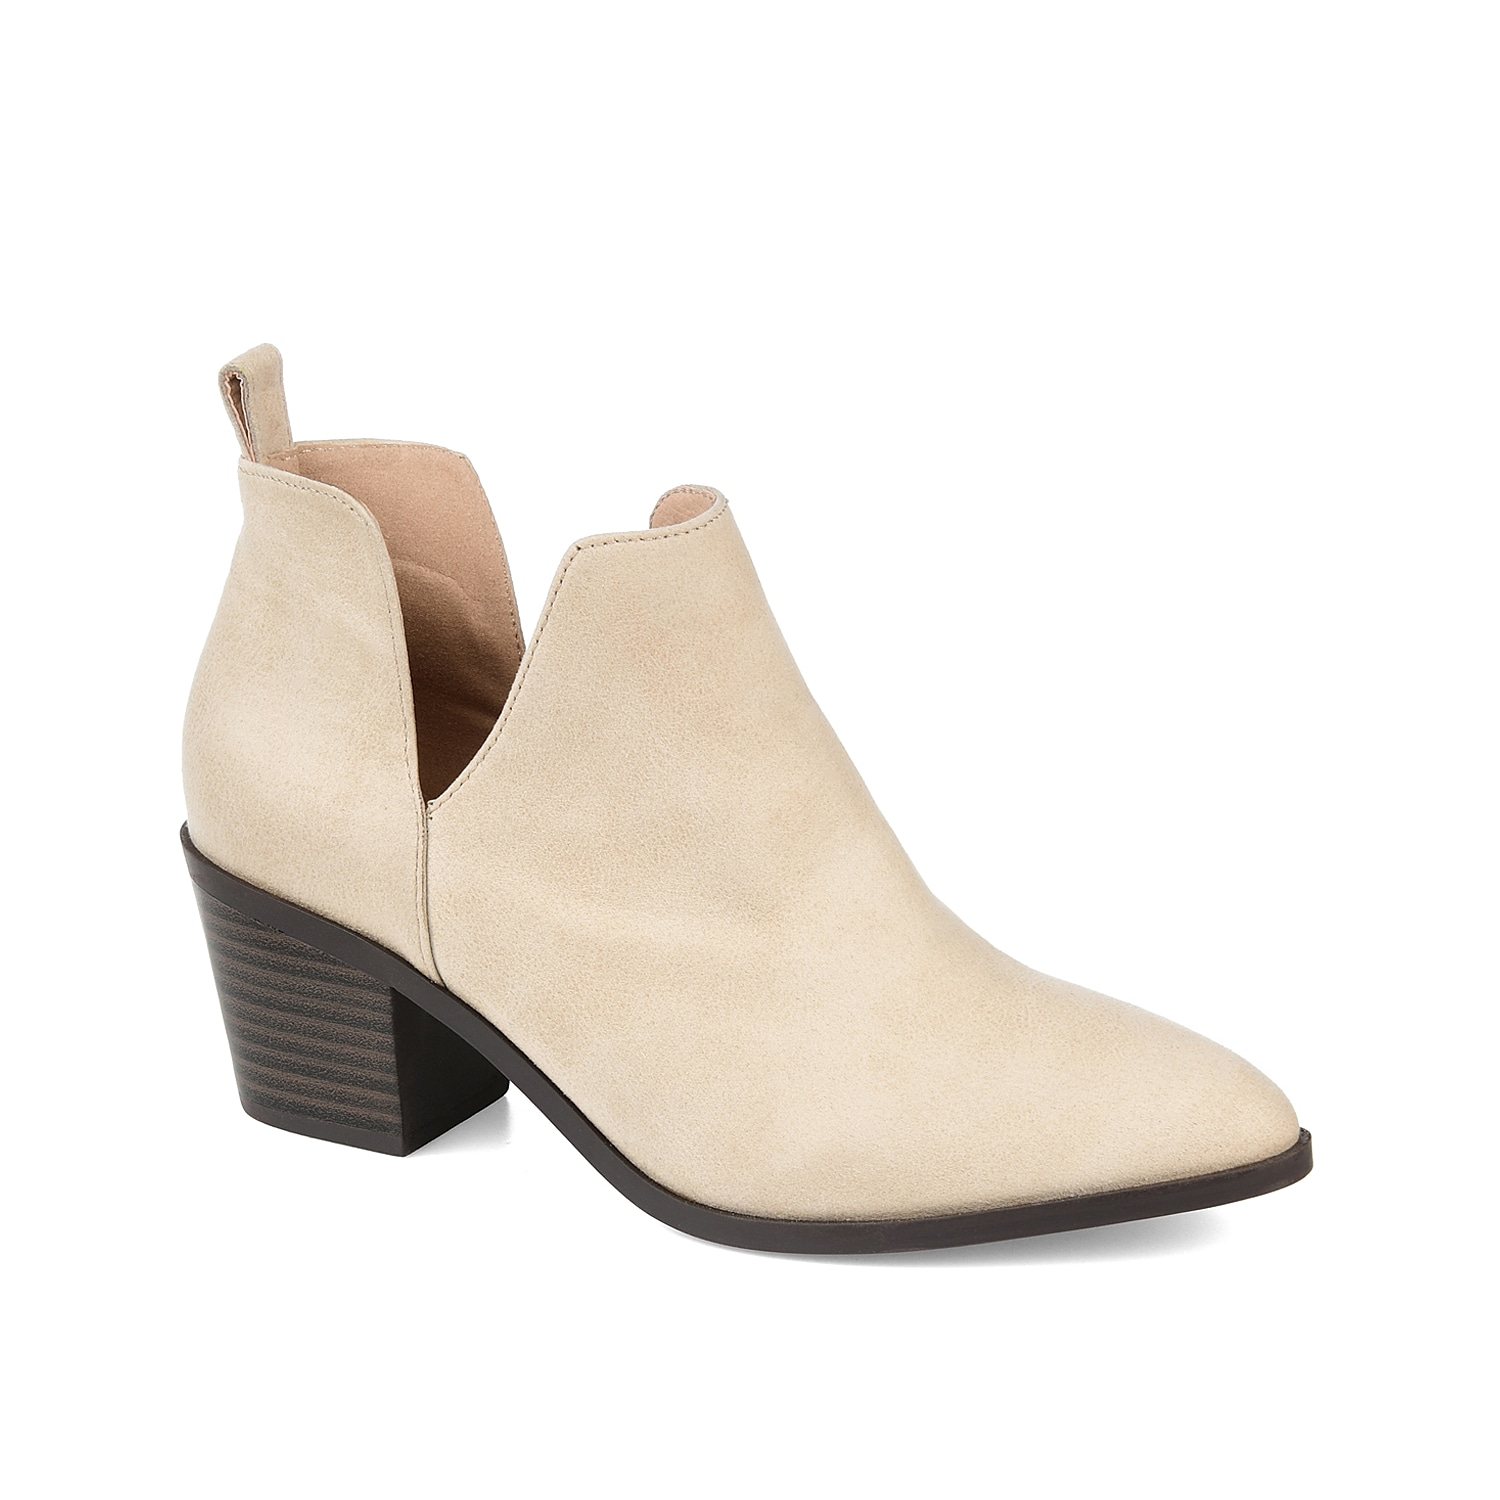 The Lola bootie from Journee Collection will give your wardrobe limitless styling options. This ankle boot is fashioned with side V-cuts and a chunky block heel for the perfect amount of height!